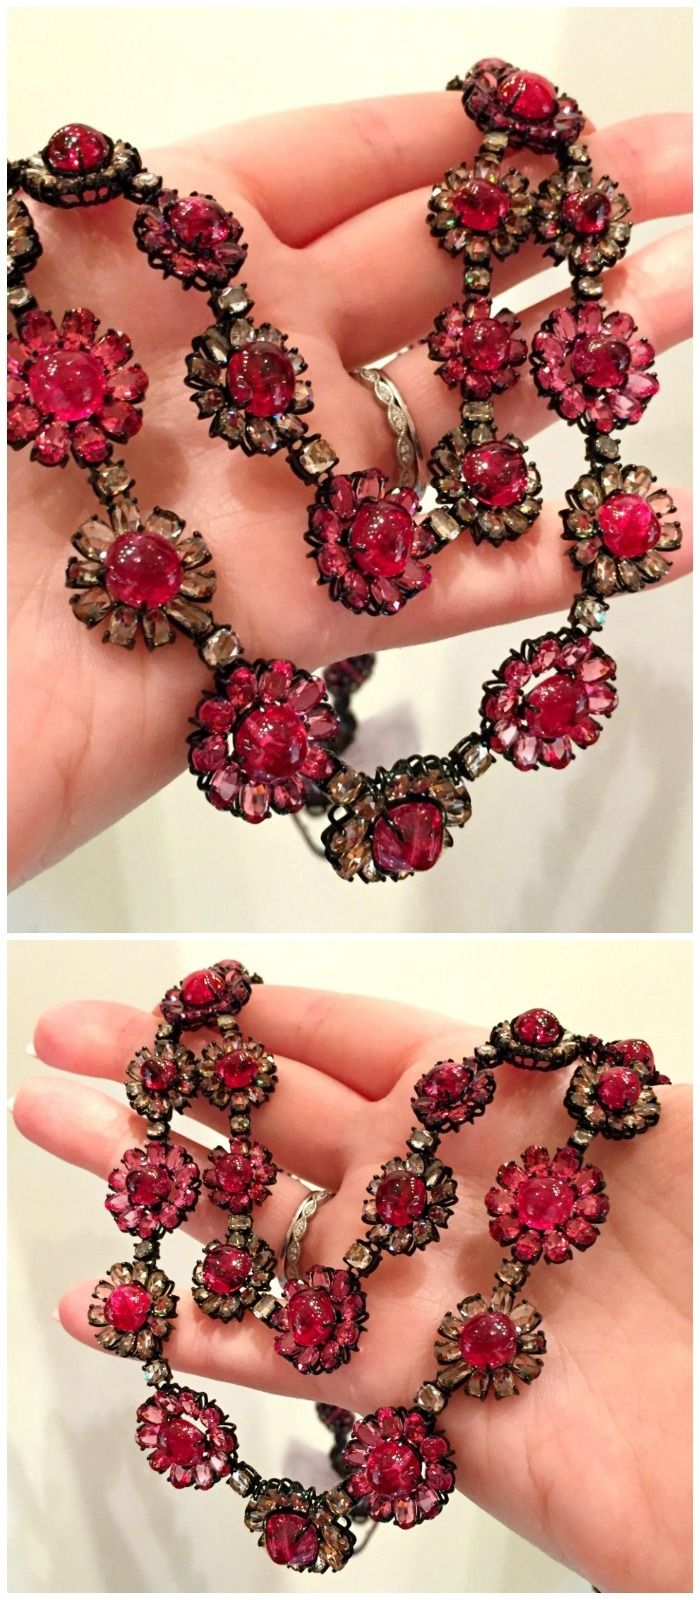 A beautiful diamond and red spinel flower necklace from Sutra.